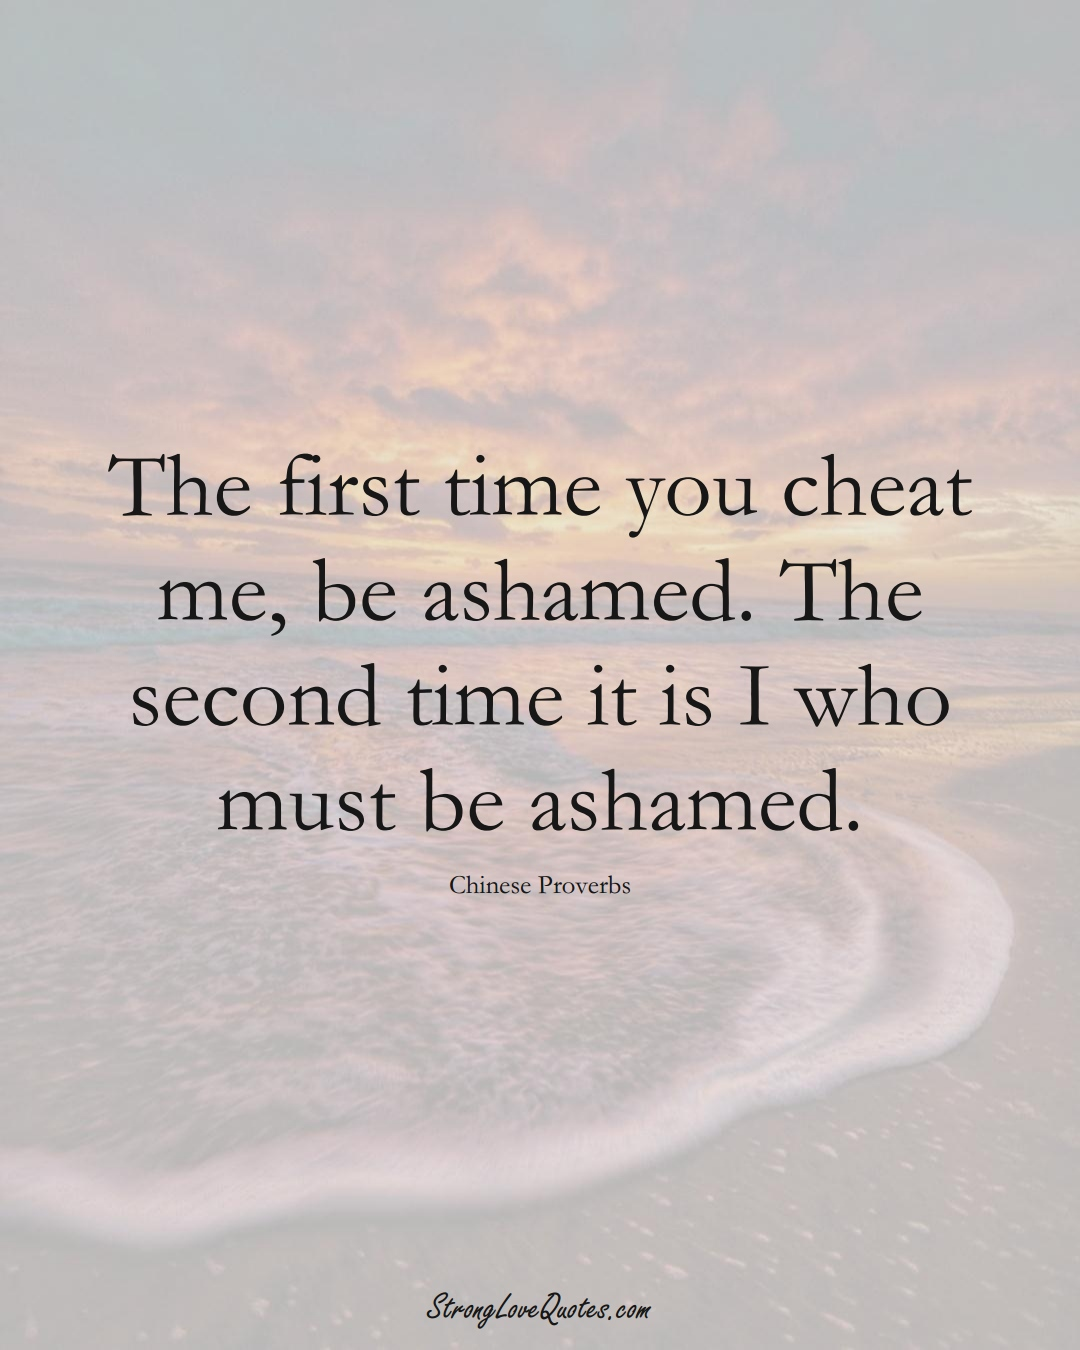 The first time you cheat me, be ashamed. The second time it is I who must be ashamed. (Chinese Sayings);  #AsianSayings